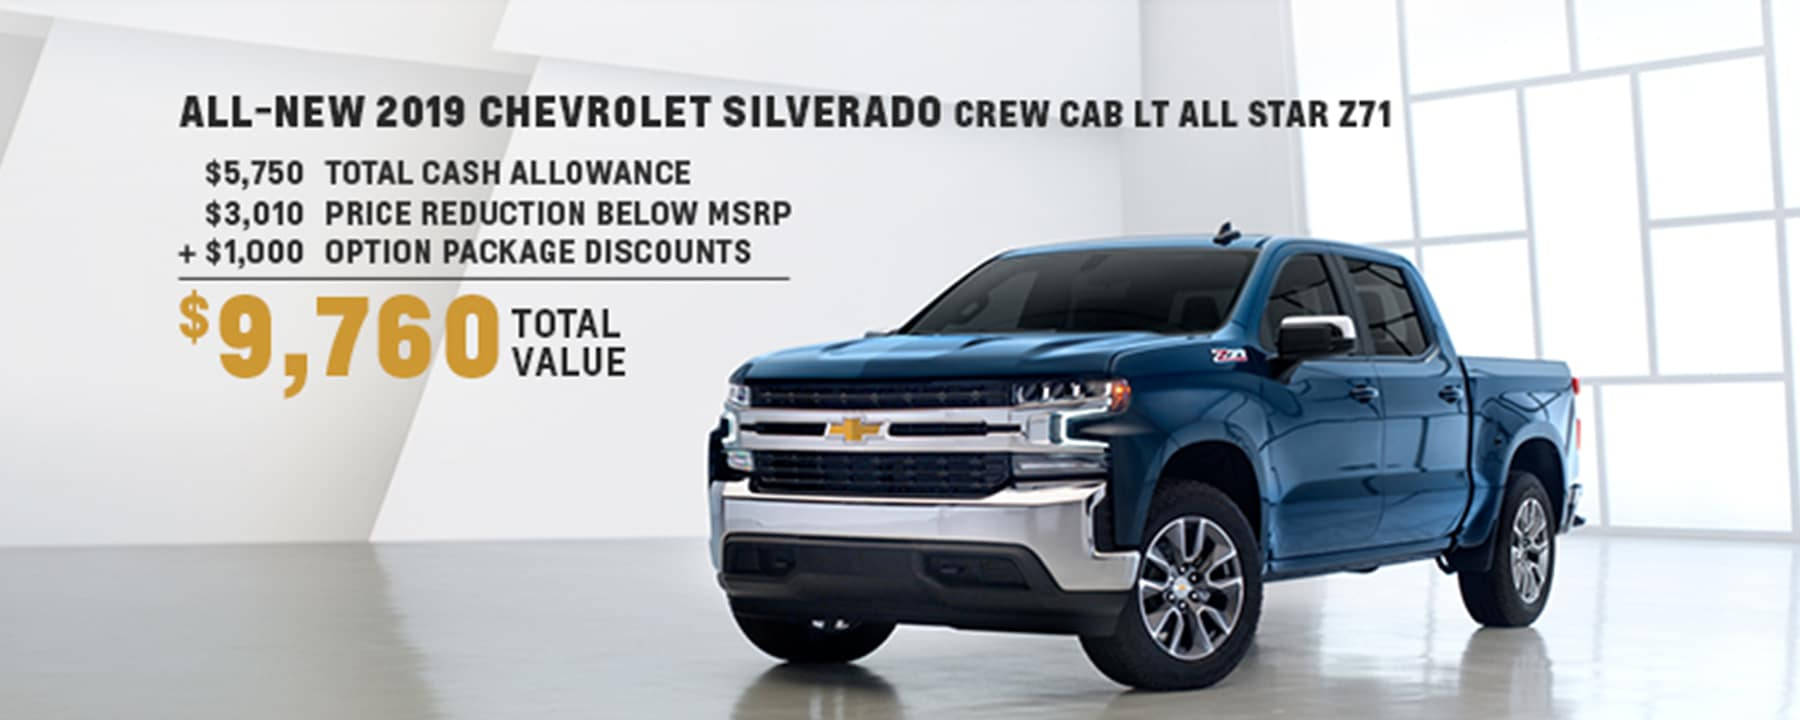 Chevrolet Of Homewood New Used Car Dealer Auto Service